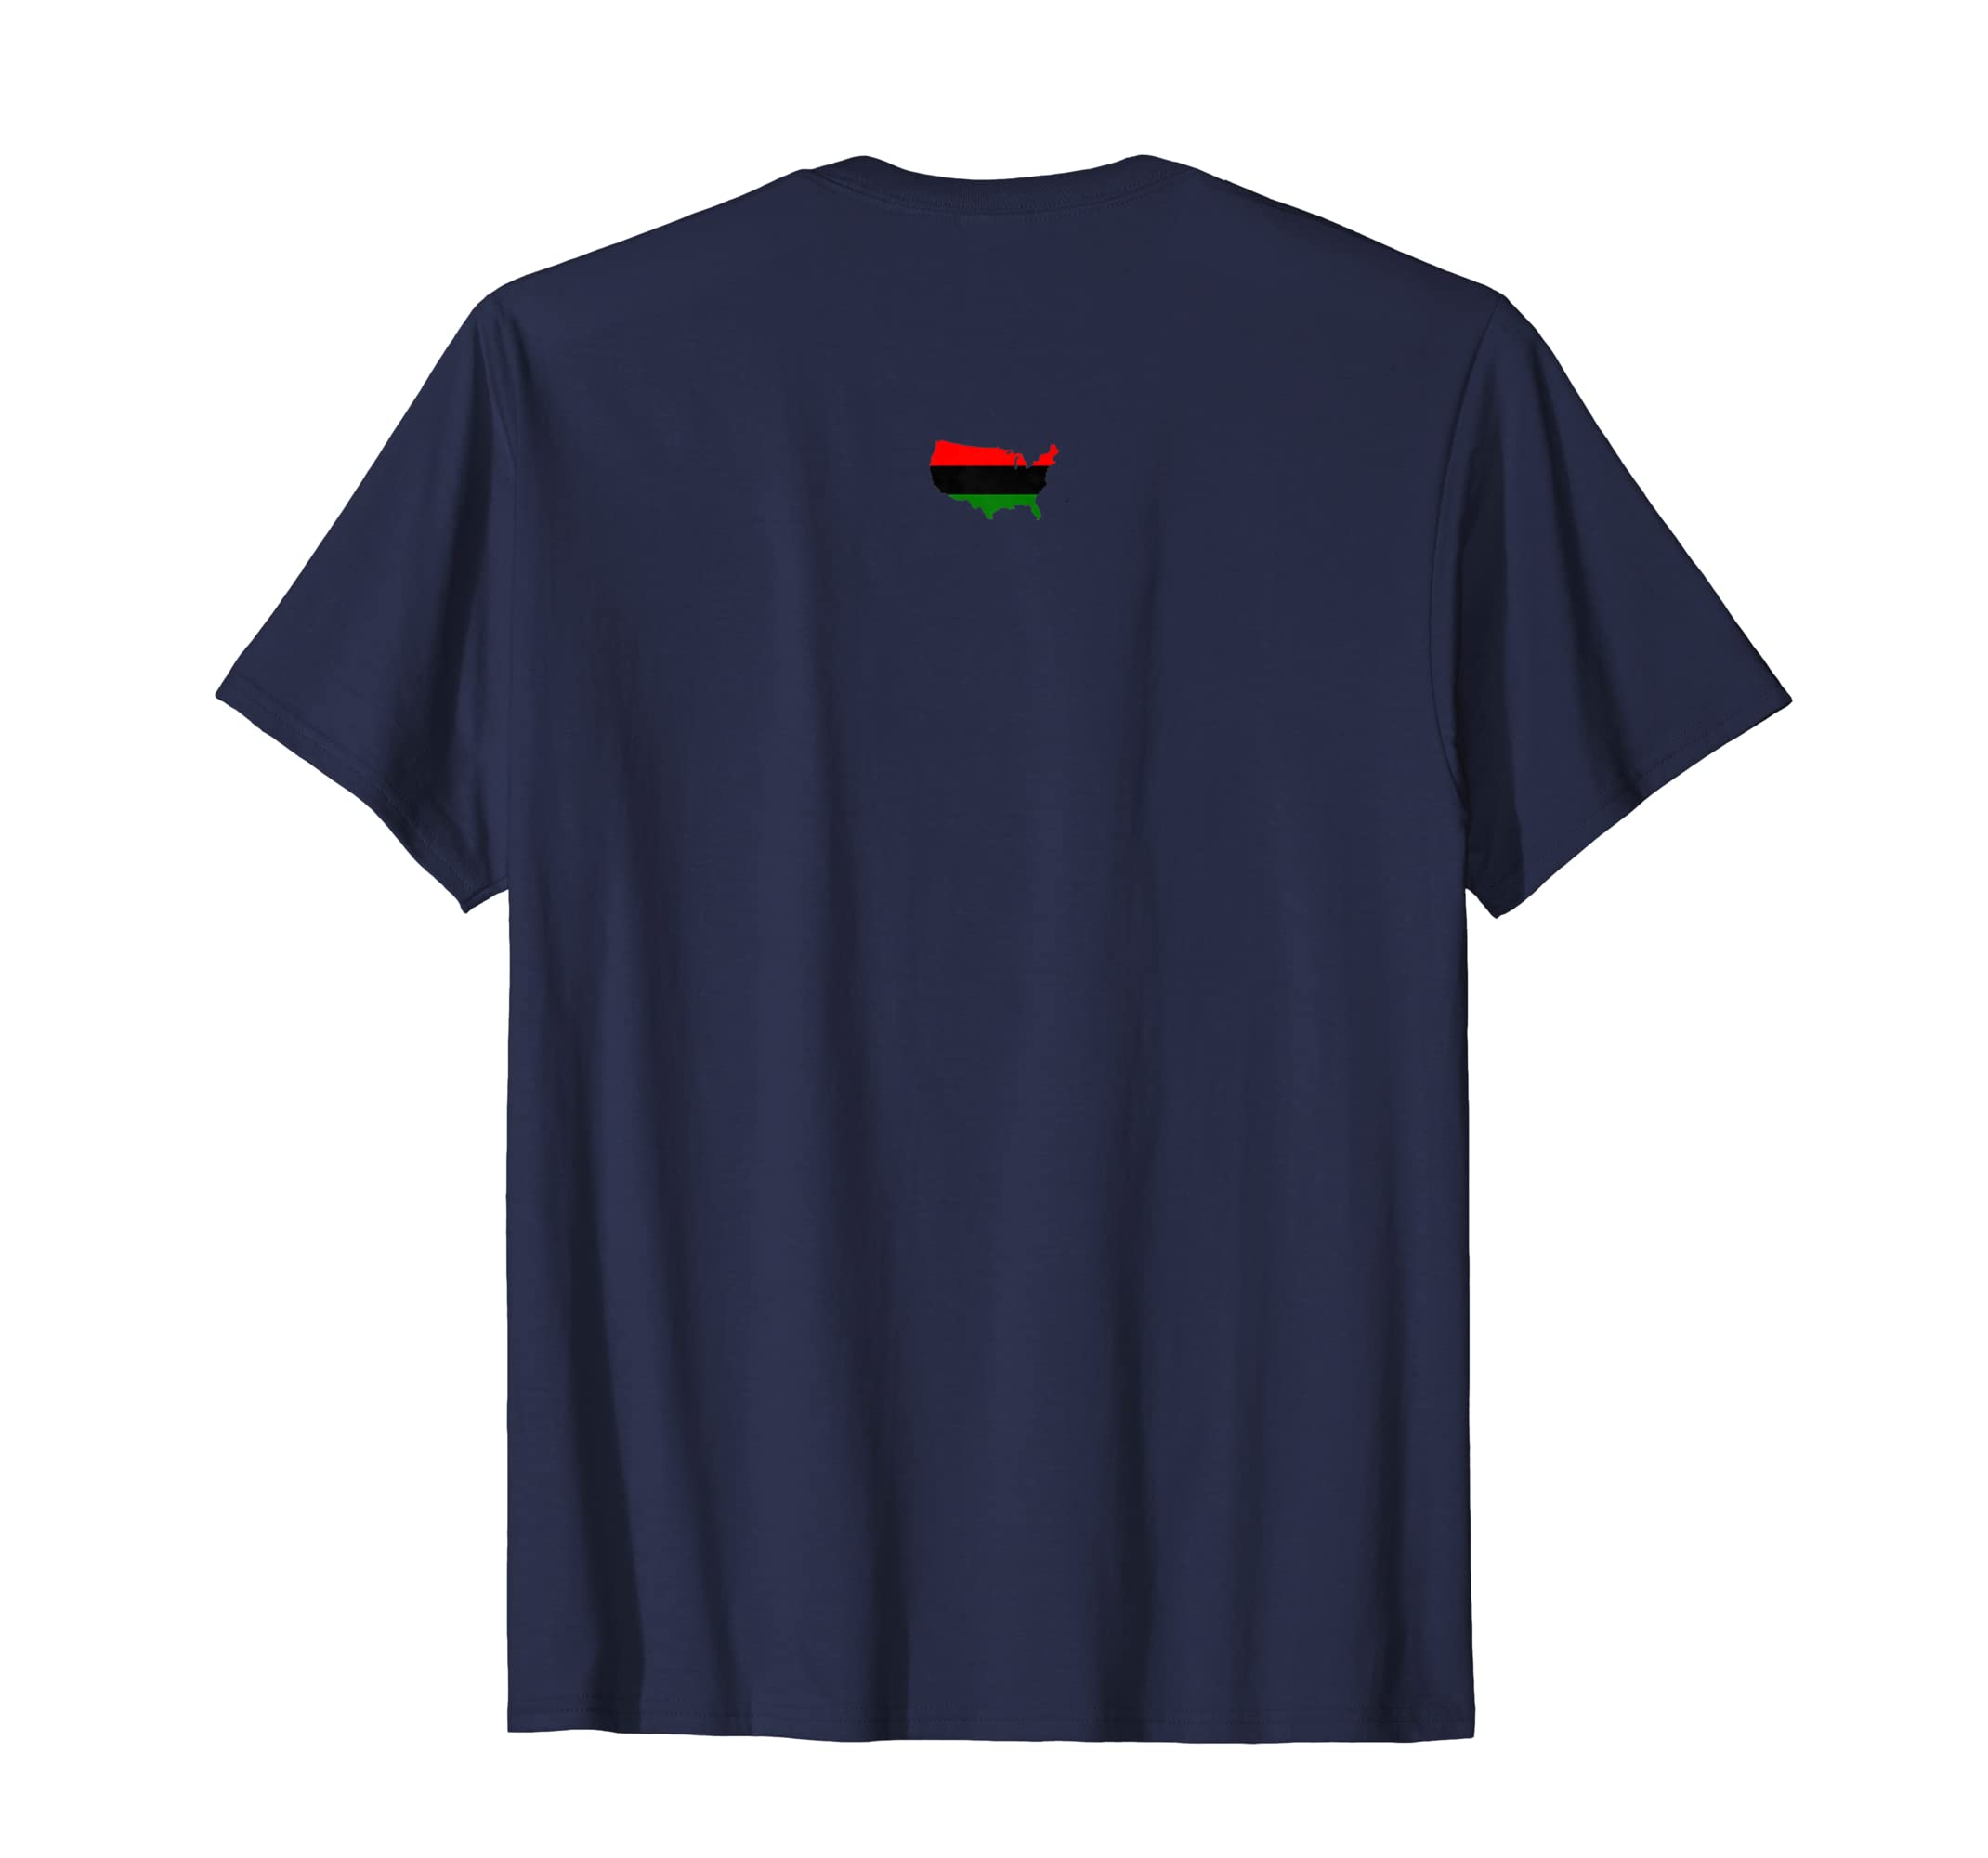 Amazon.com  African American Flag T-Shirt - Harlem  Clothing 9800edfc3fe